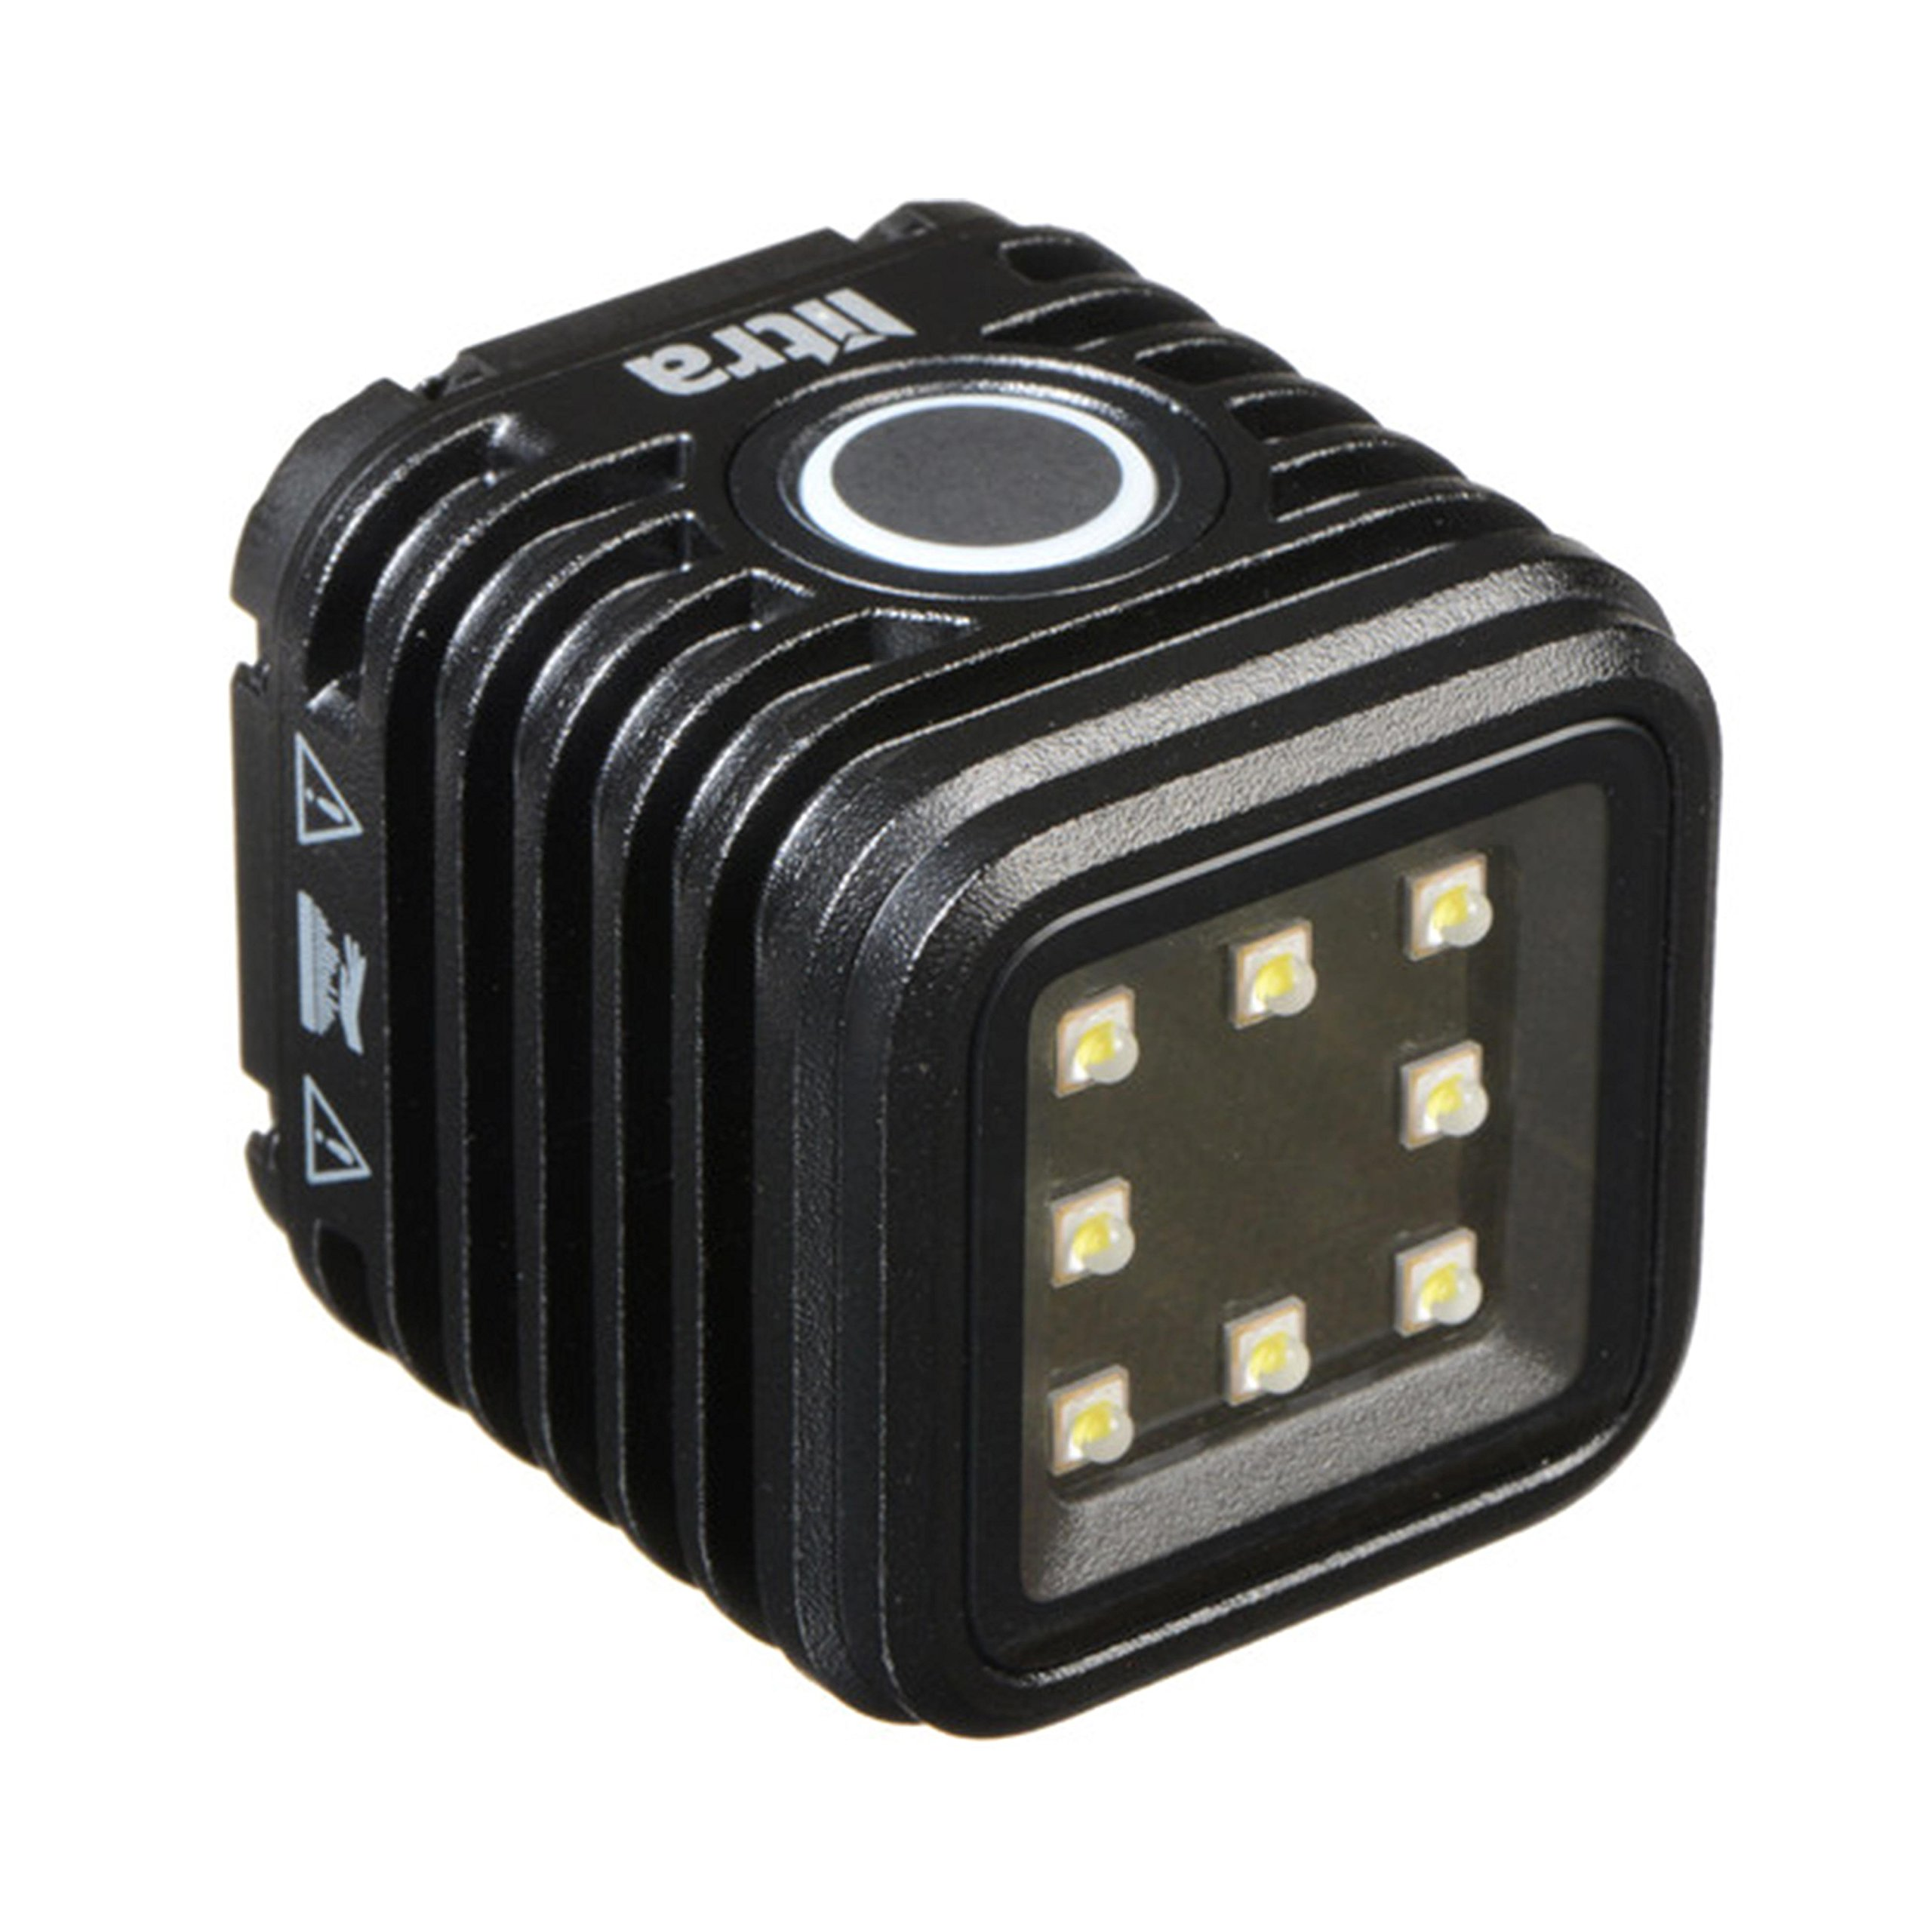 LitraTorch - Premium On-Camera Photo and Video Compact Waterproof LED Light by Litra